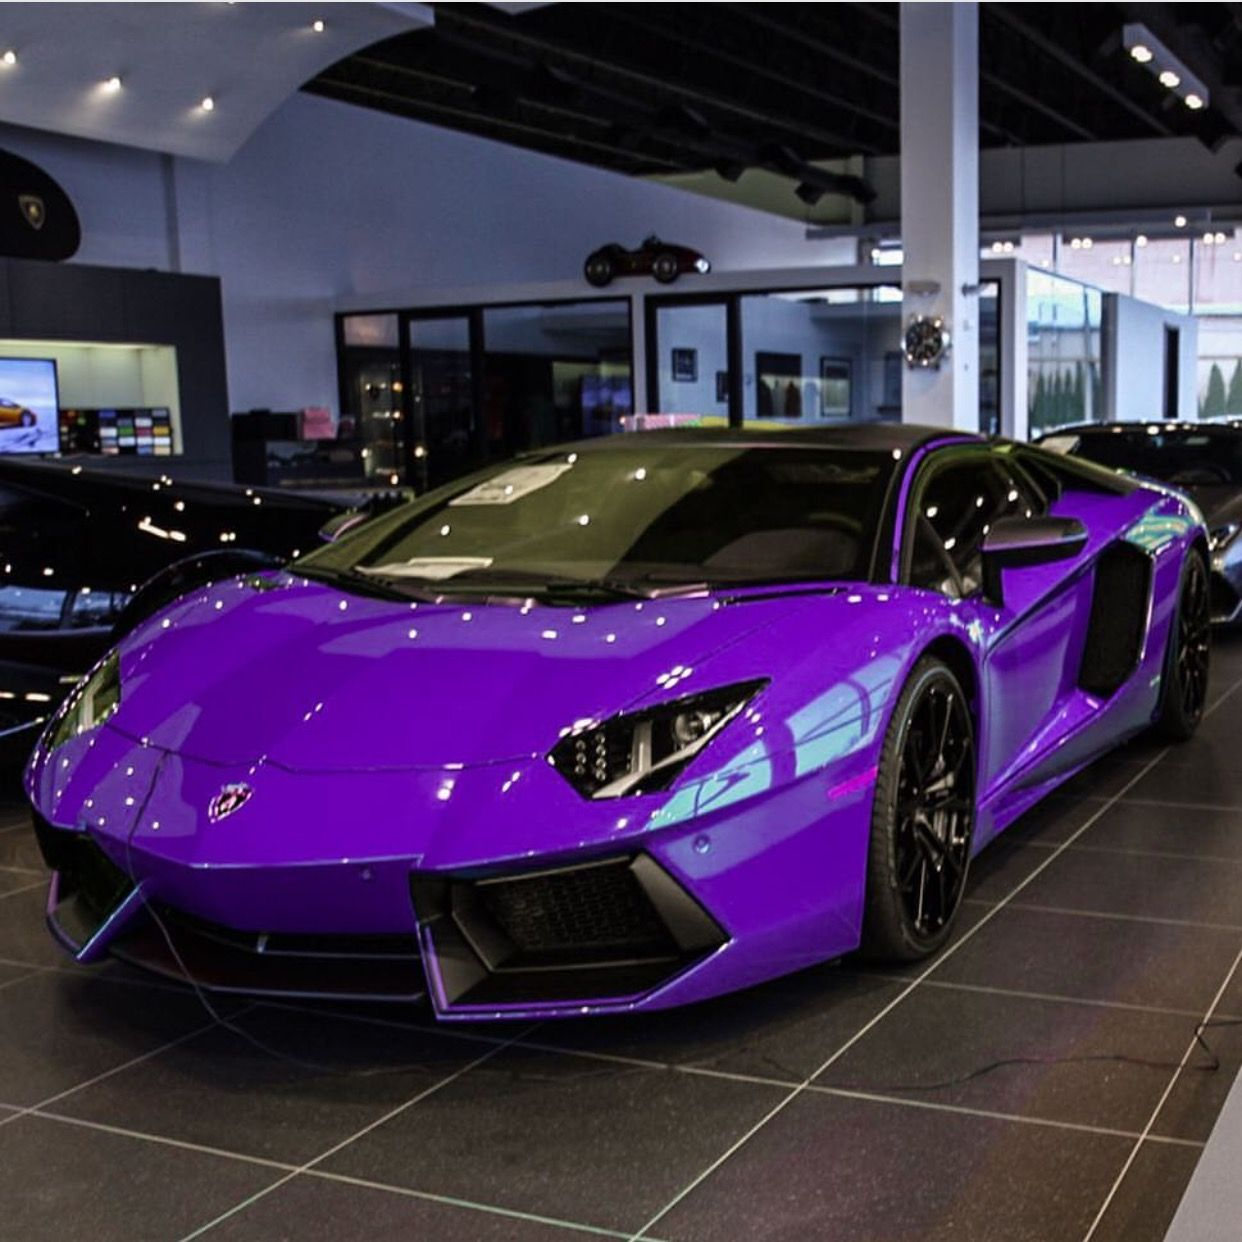 Merveilleux Lamborghini Aventador Roadster Painted In Royal Purple Photo Taken By:  @keystothejungle On Instagram